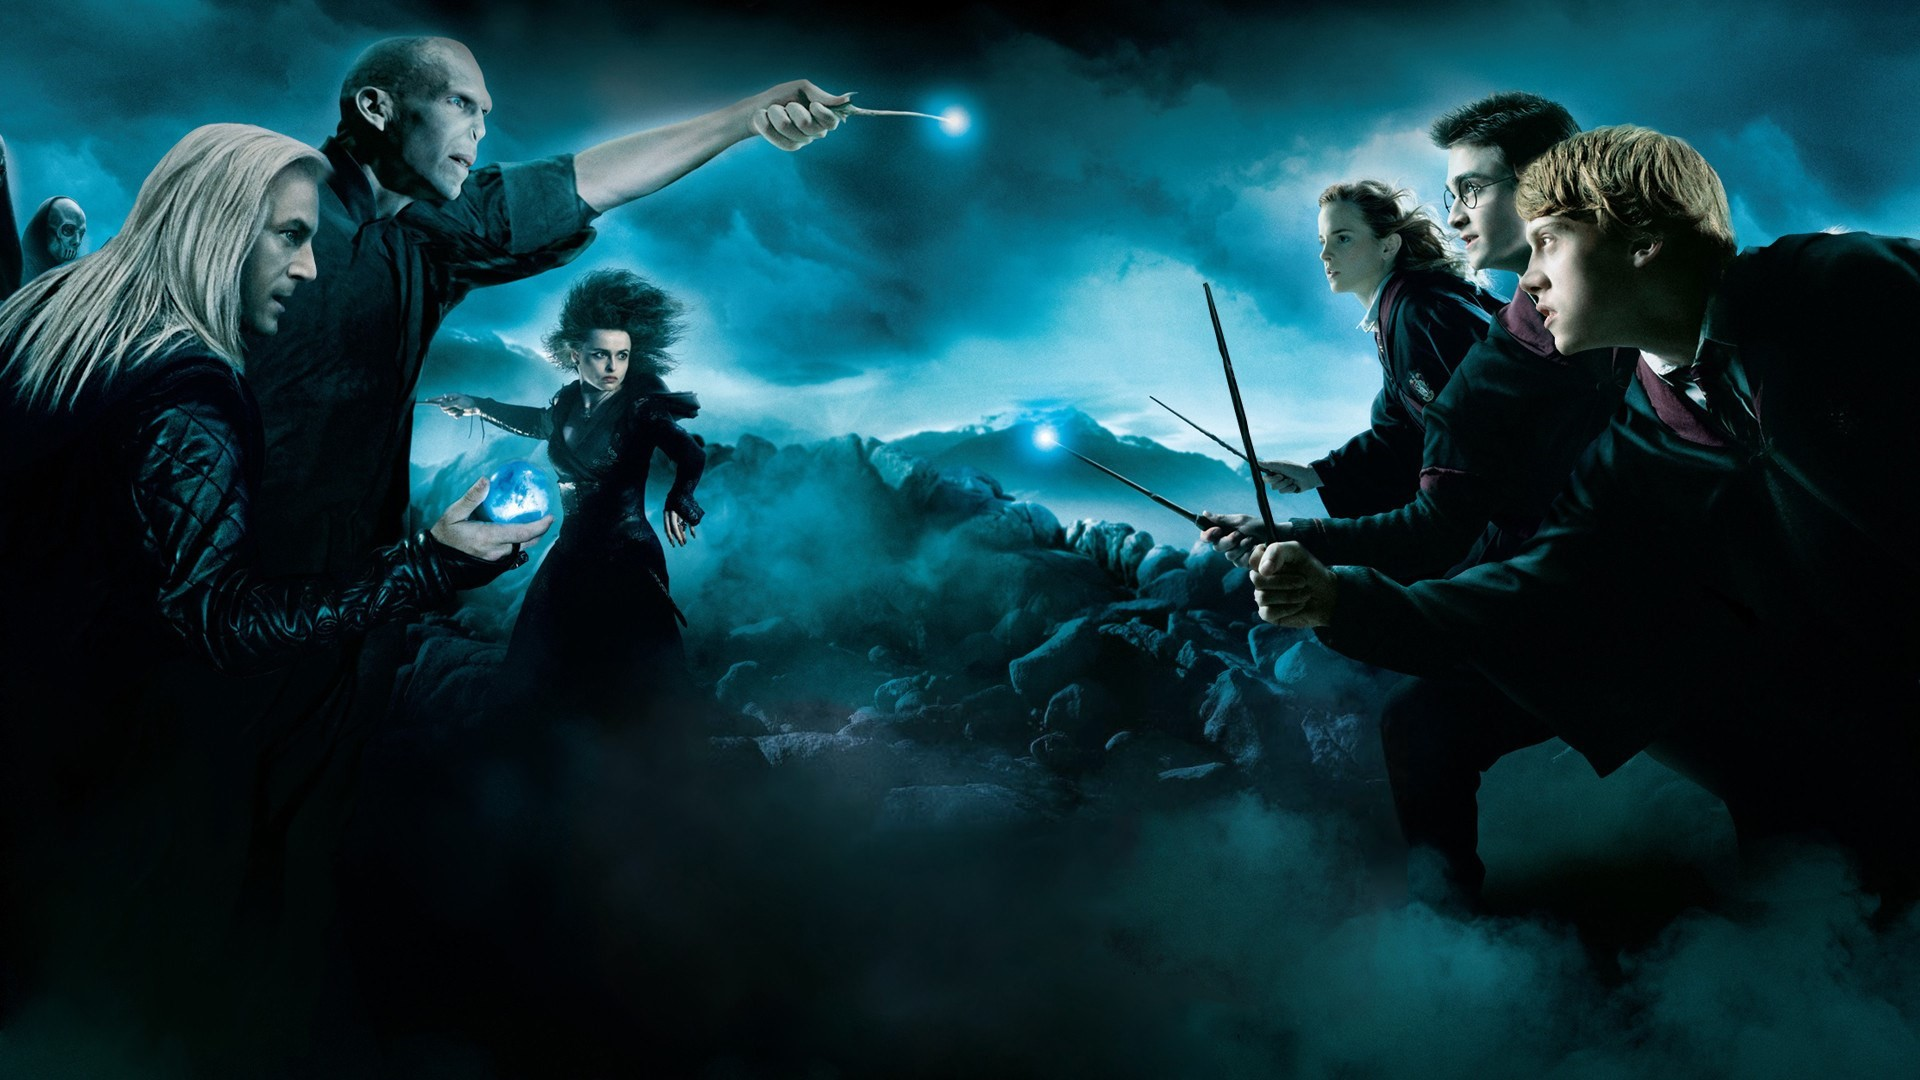 free computer wallpaper for harry potter and the order of the  phoenix